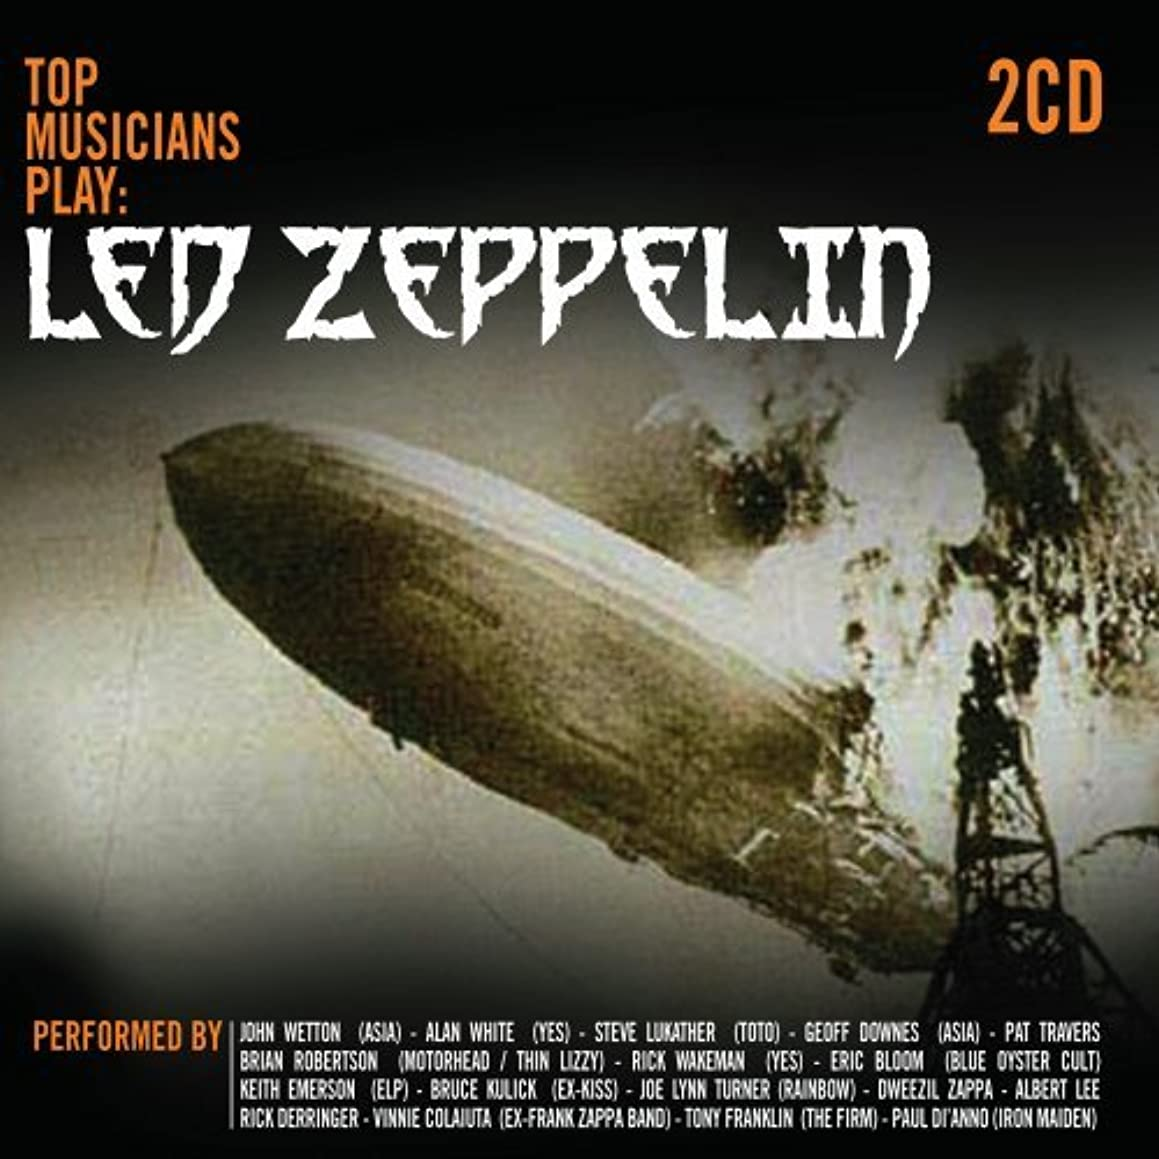 Led Zeppelin - As Performed By